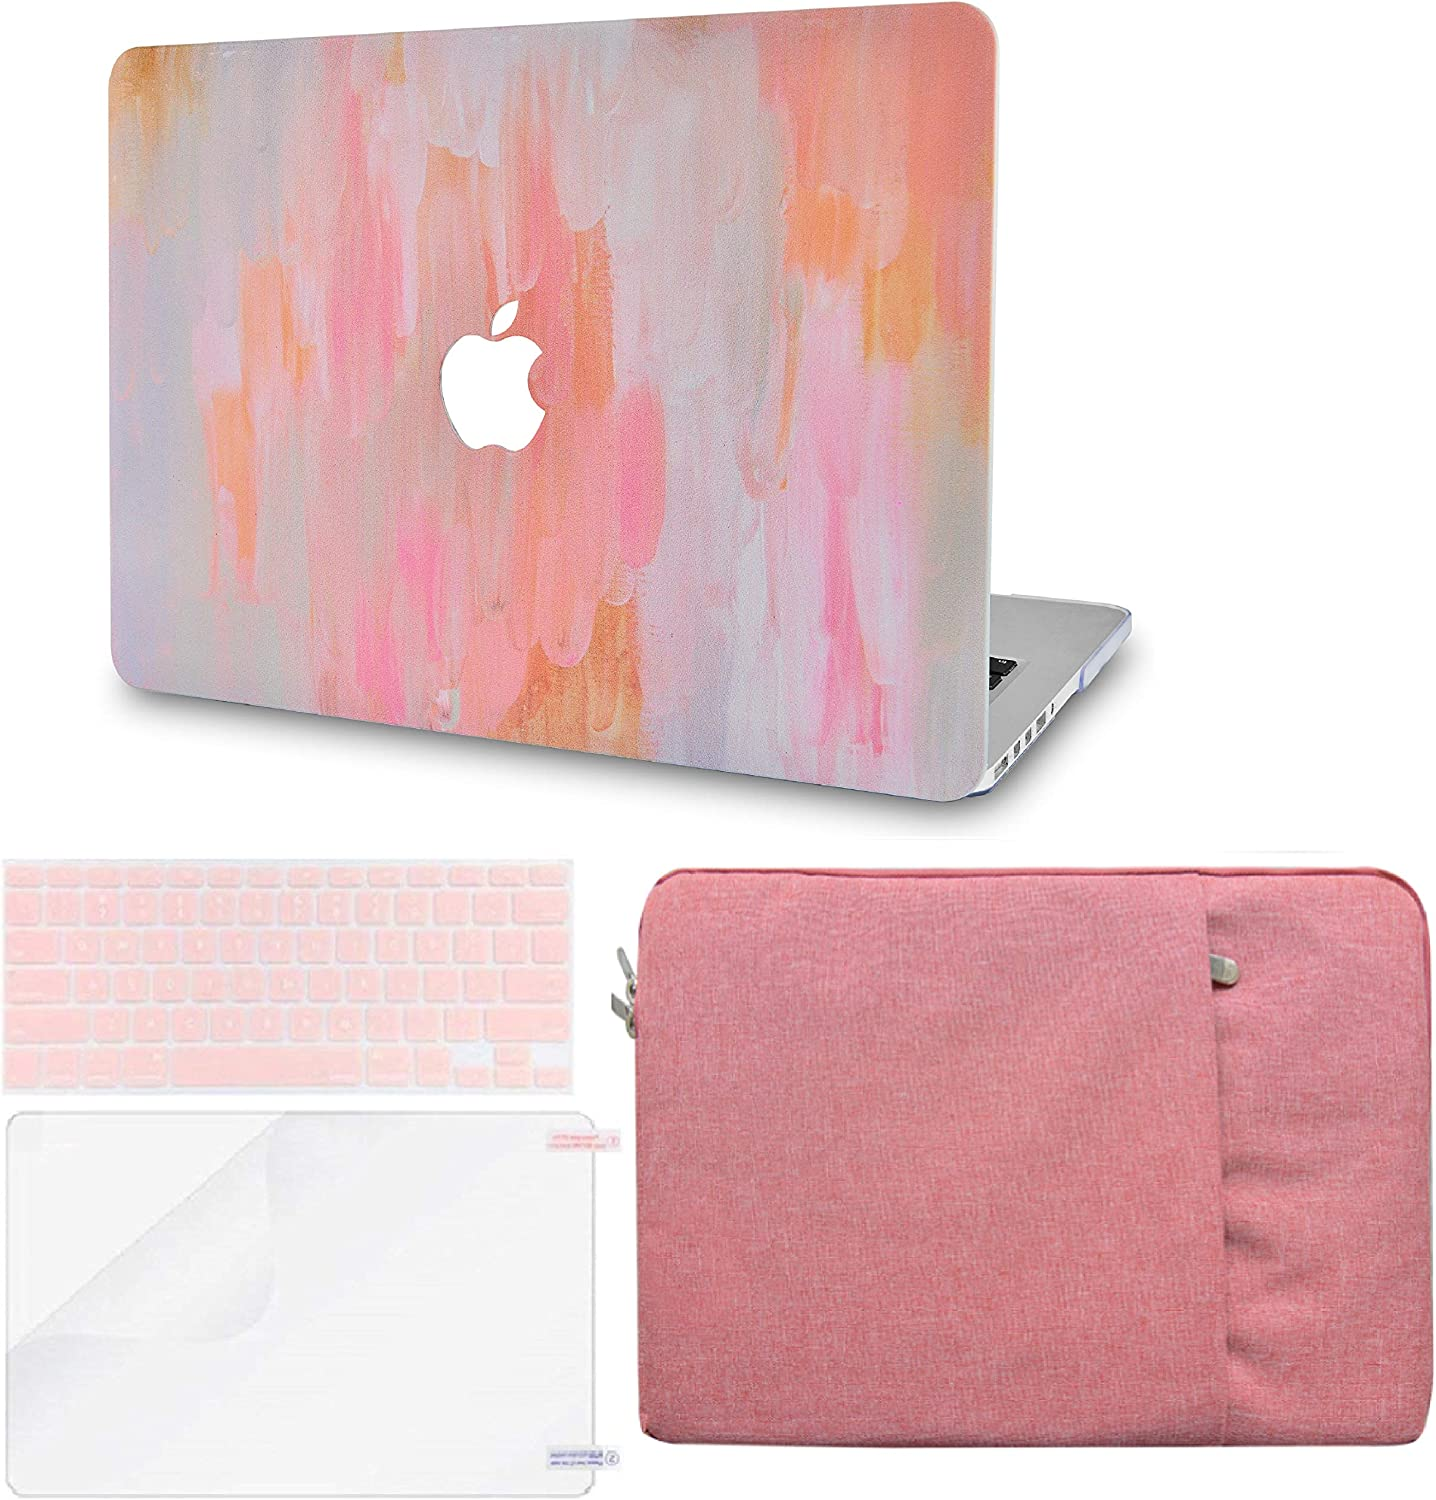 """LuvCase 4in1 LaptopCase forMacBookPro 13""""(2020/2019/2018/2017/2016) w/wo Touch Bar A2159/A1989/A1706/A1708 HardShell Cover, Sleeve, Keyboard Cover & Screen Protector (Mist 13)"""